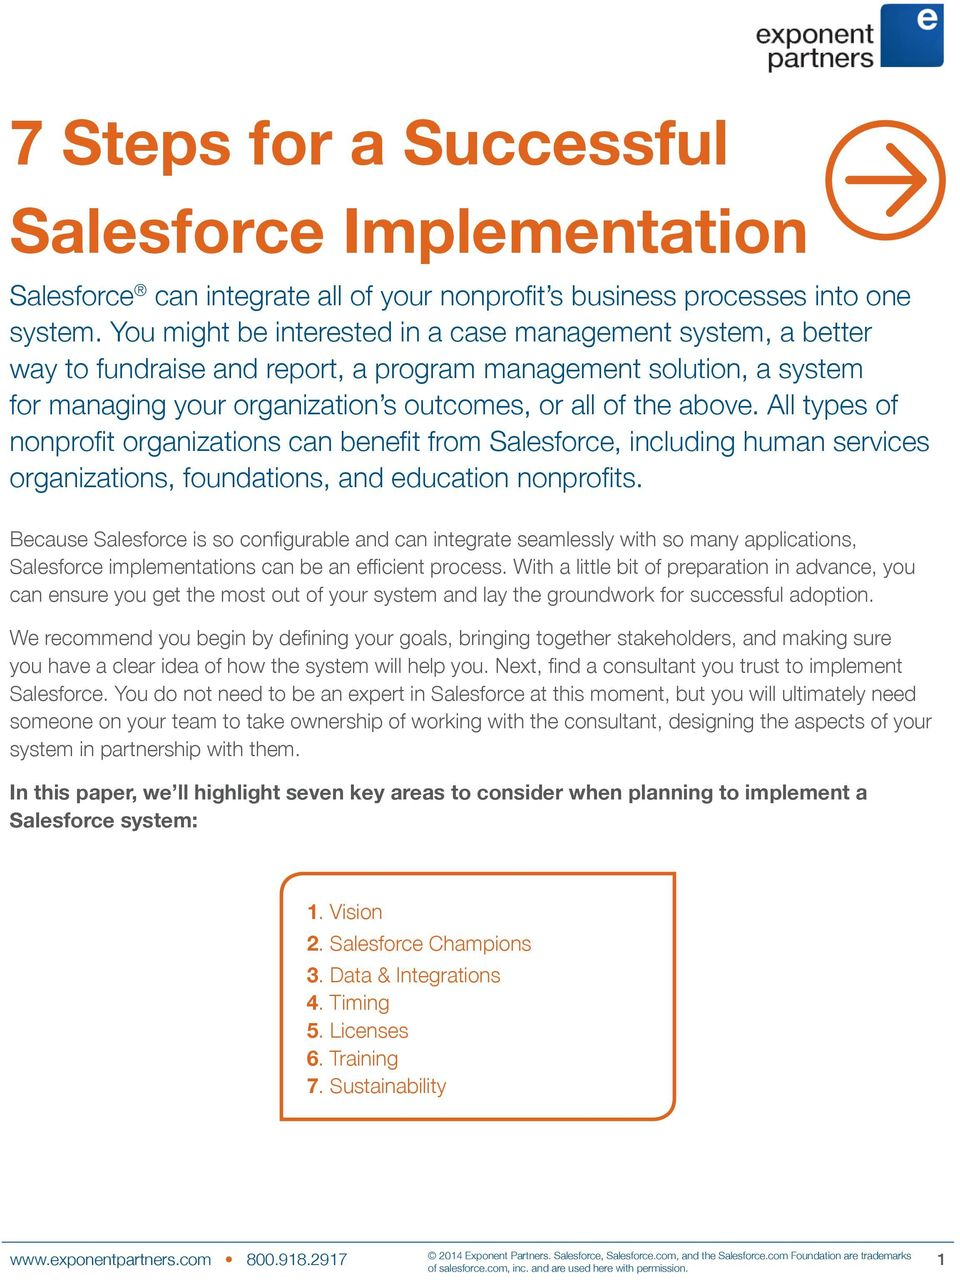 All types of nonprofit organizations can benefit from Salesforce, including human services organizations, foundations, and education nonprofits.